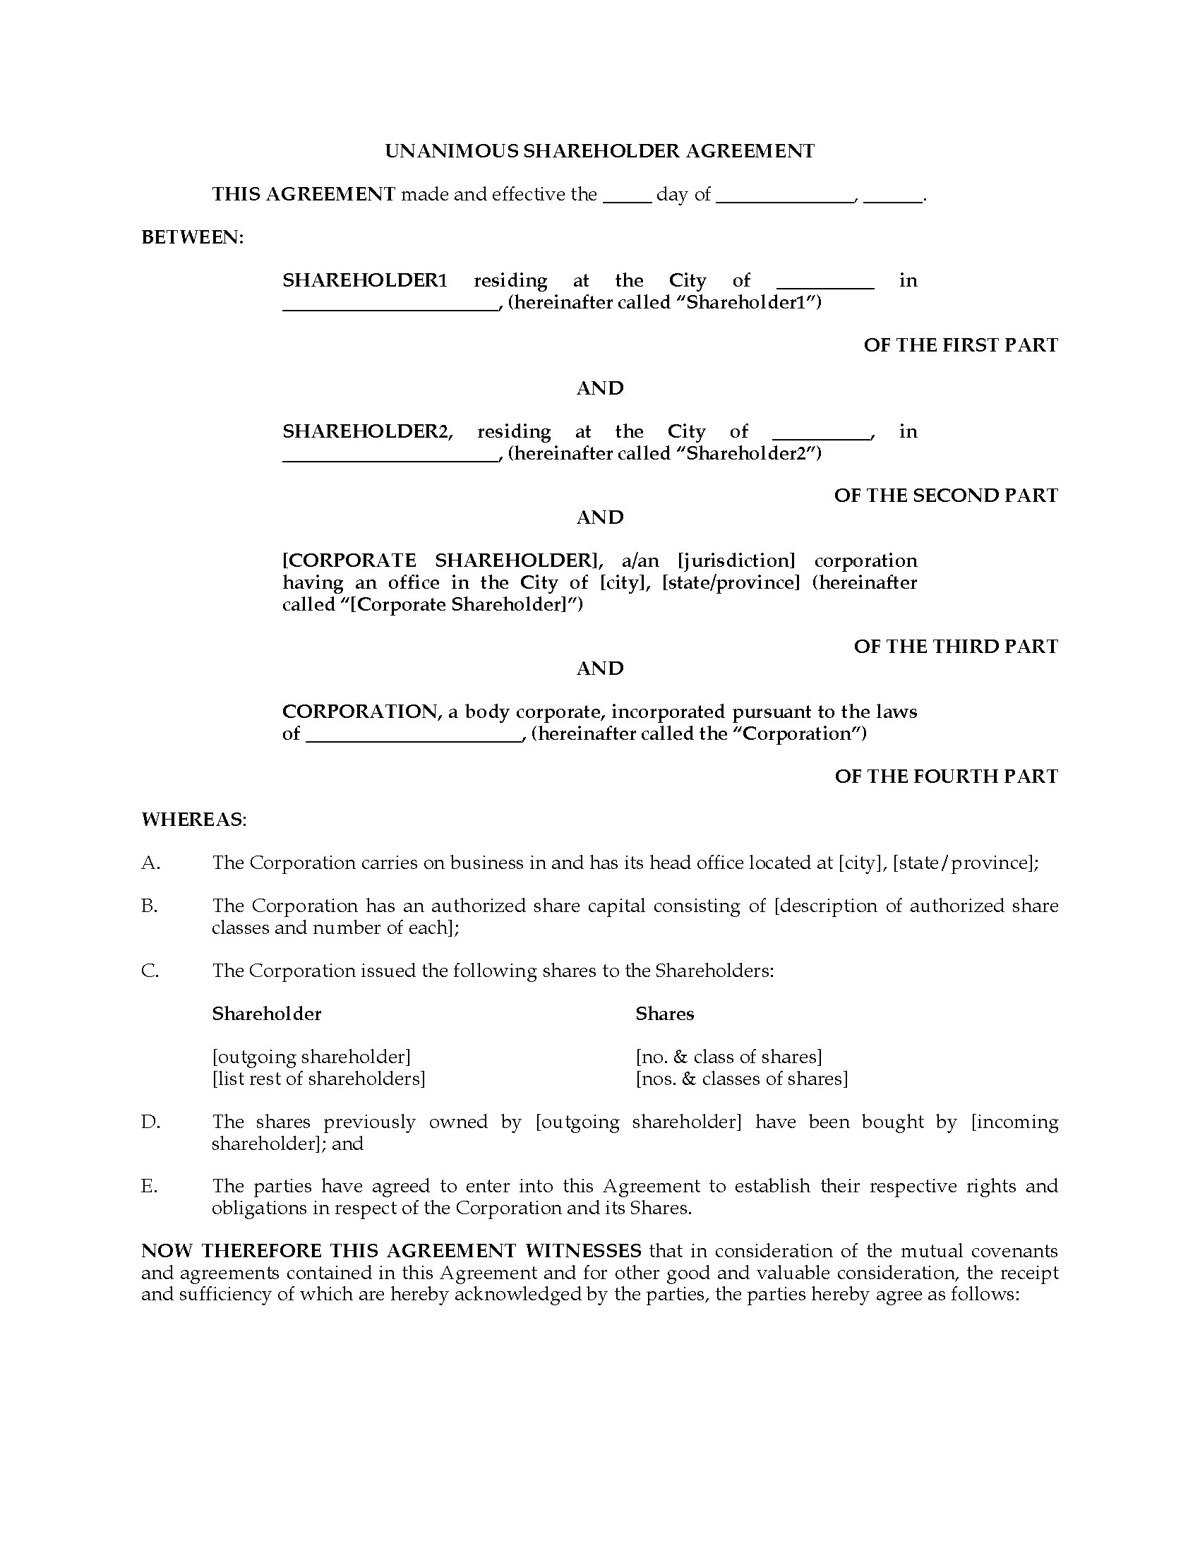 Standard Plain Unanimous Share Holder Agreement Document Letter With Regard To Unanimous Shareholder Agreement Template